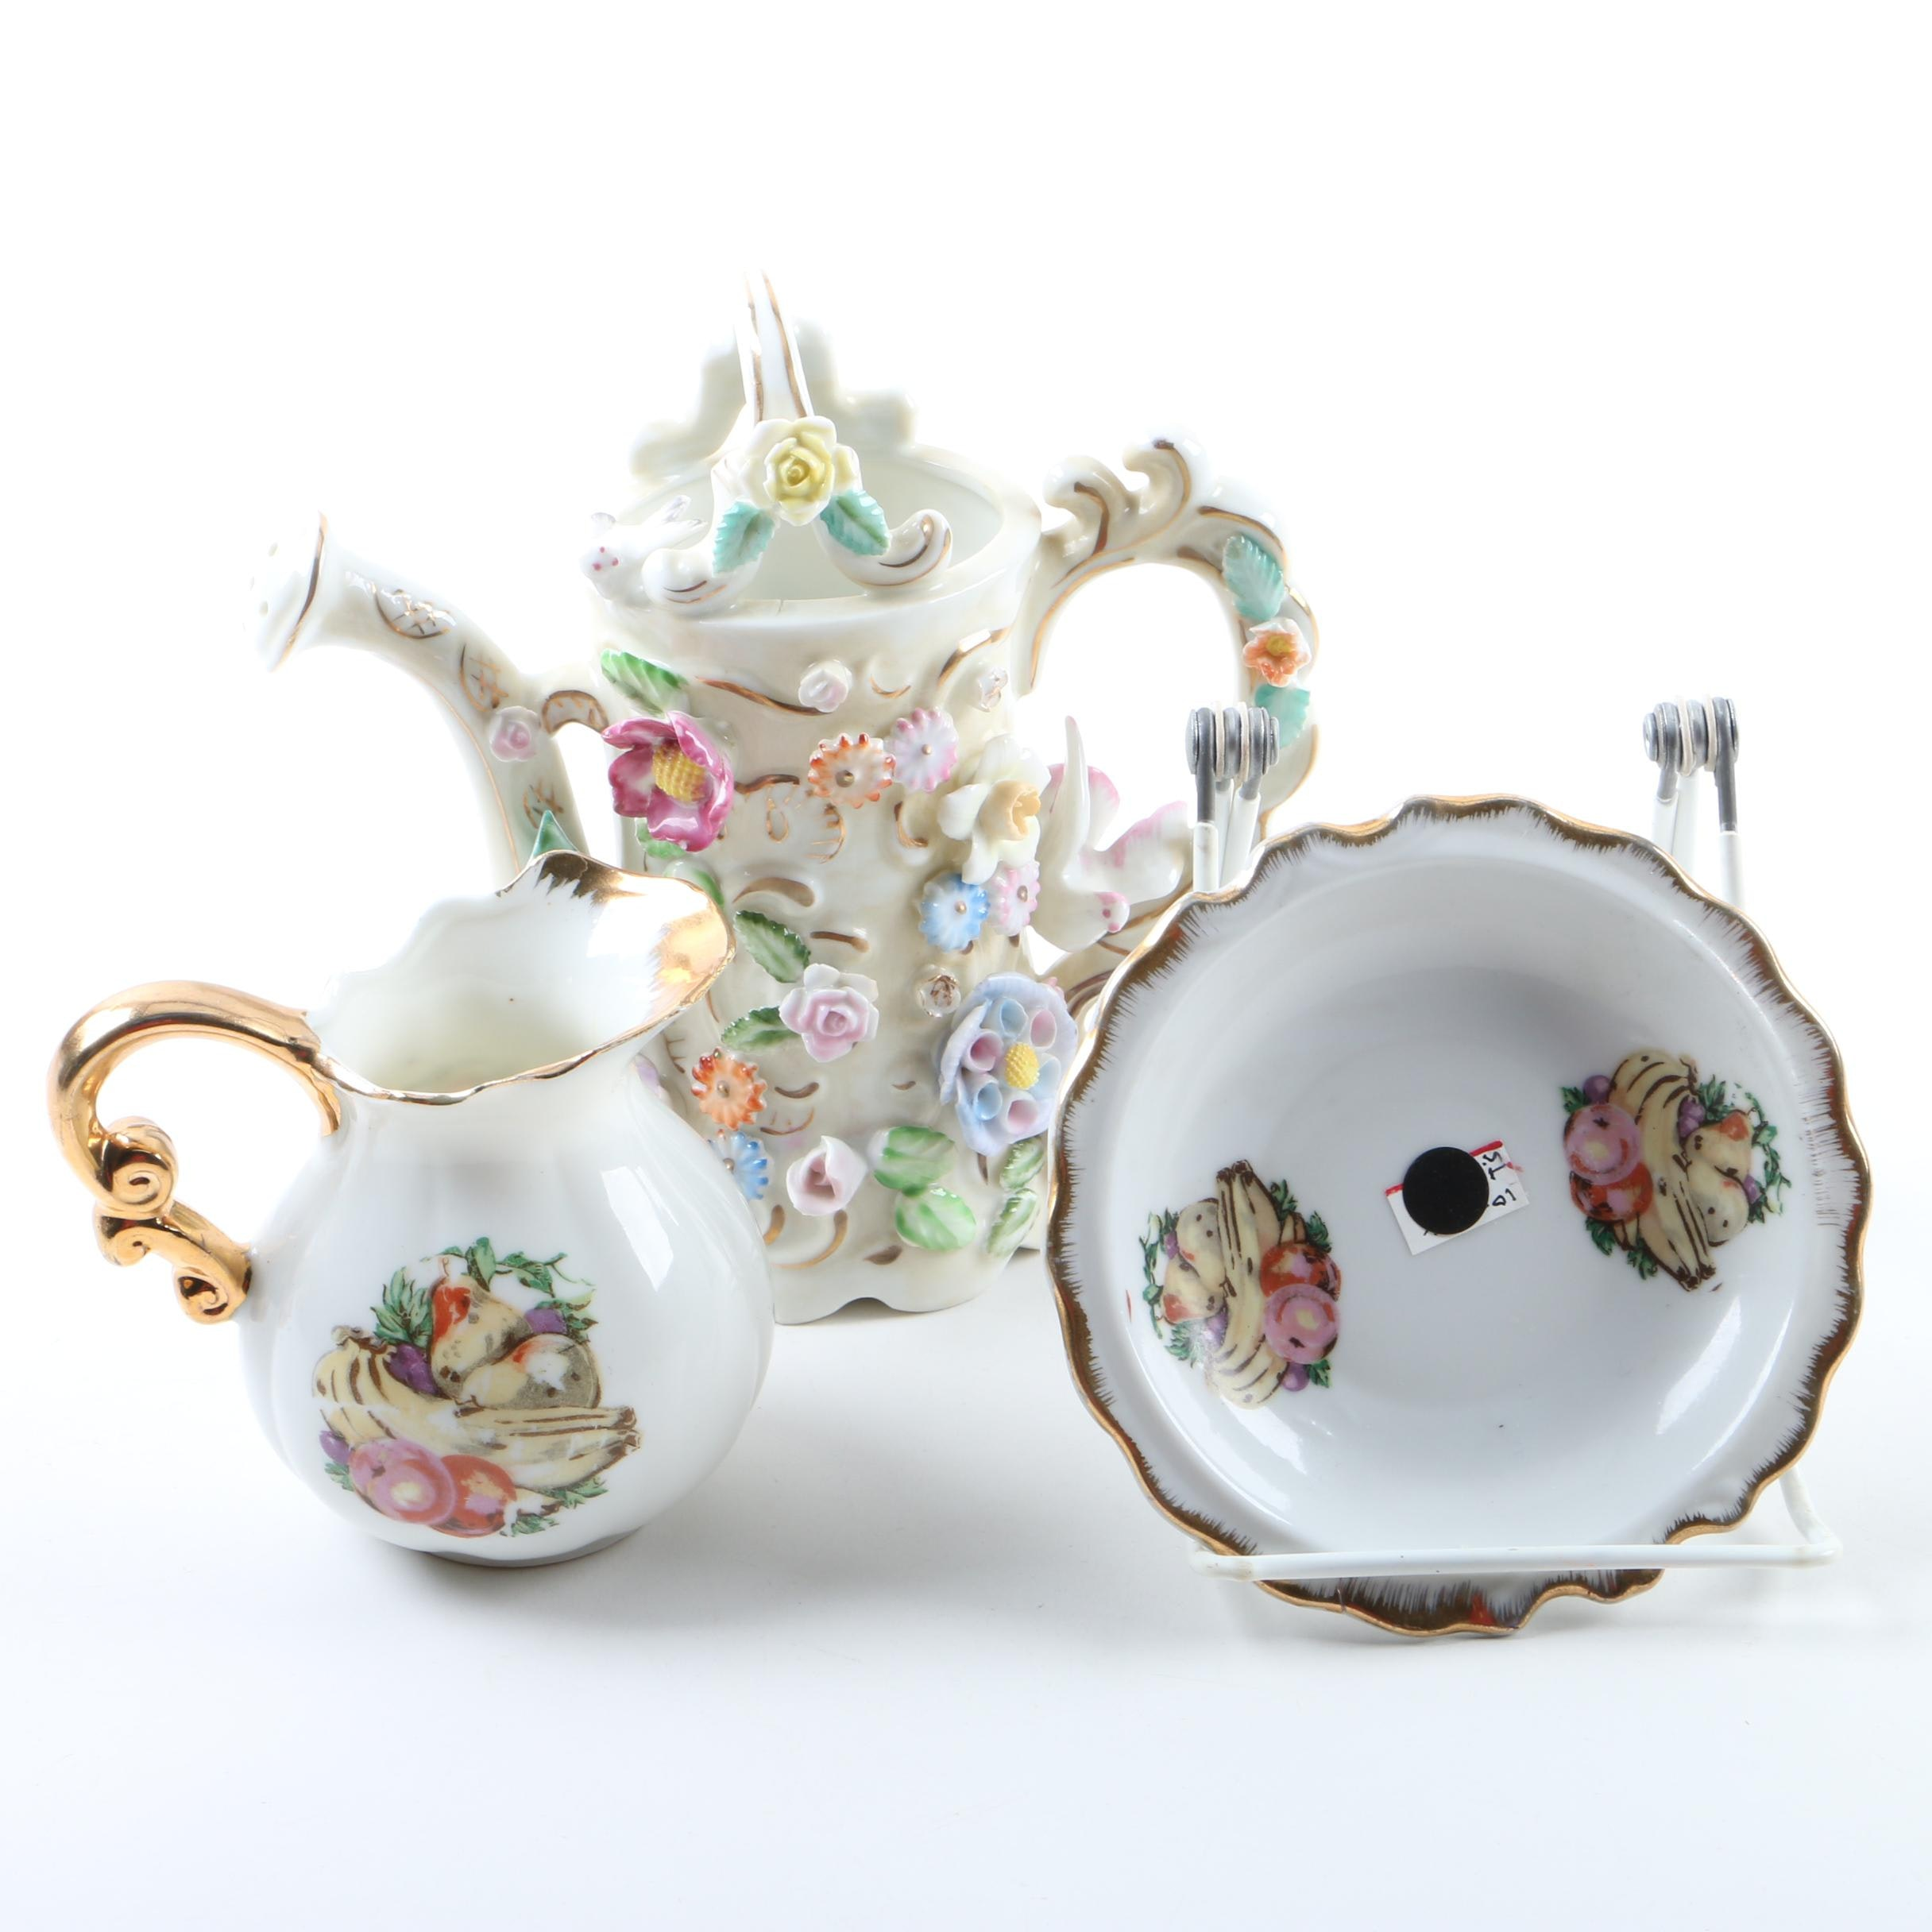 Pairing of Japanese Porcelain Creamers